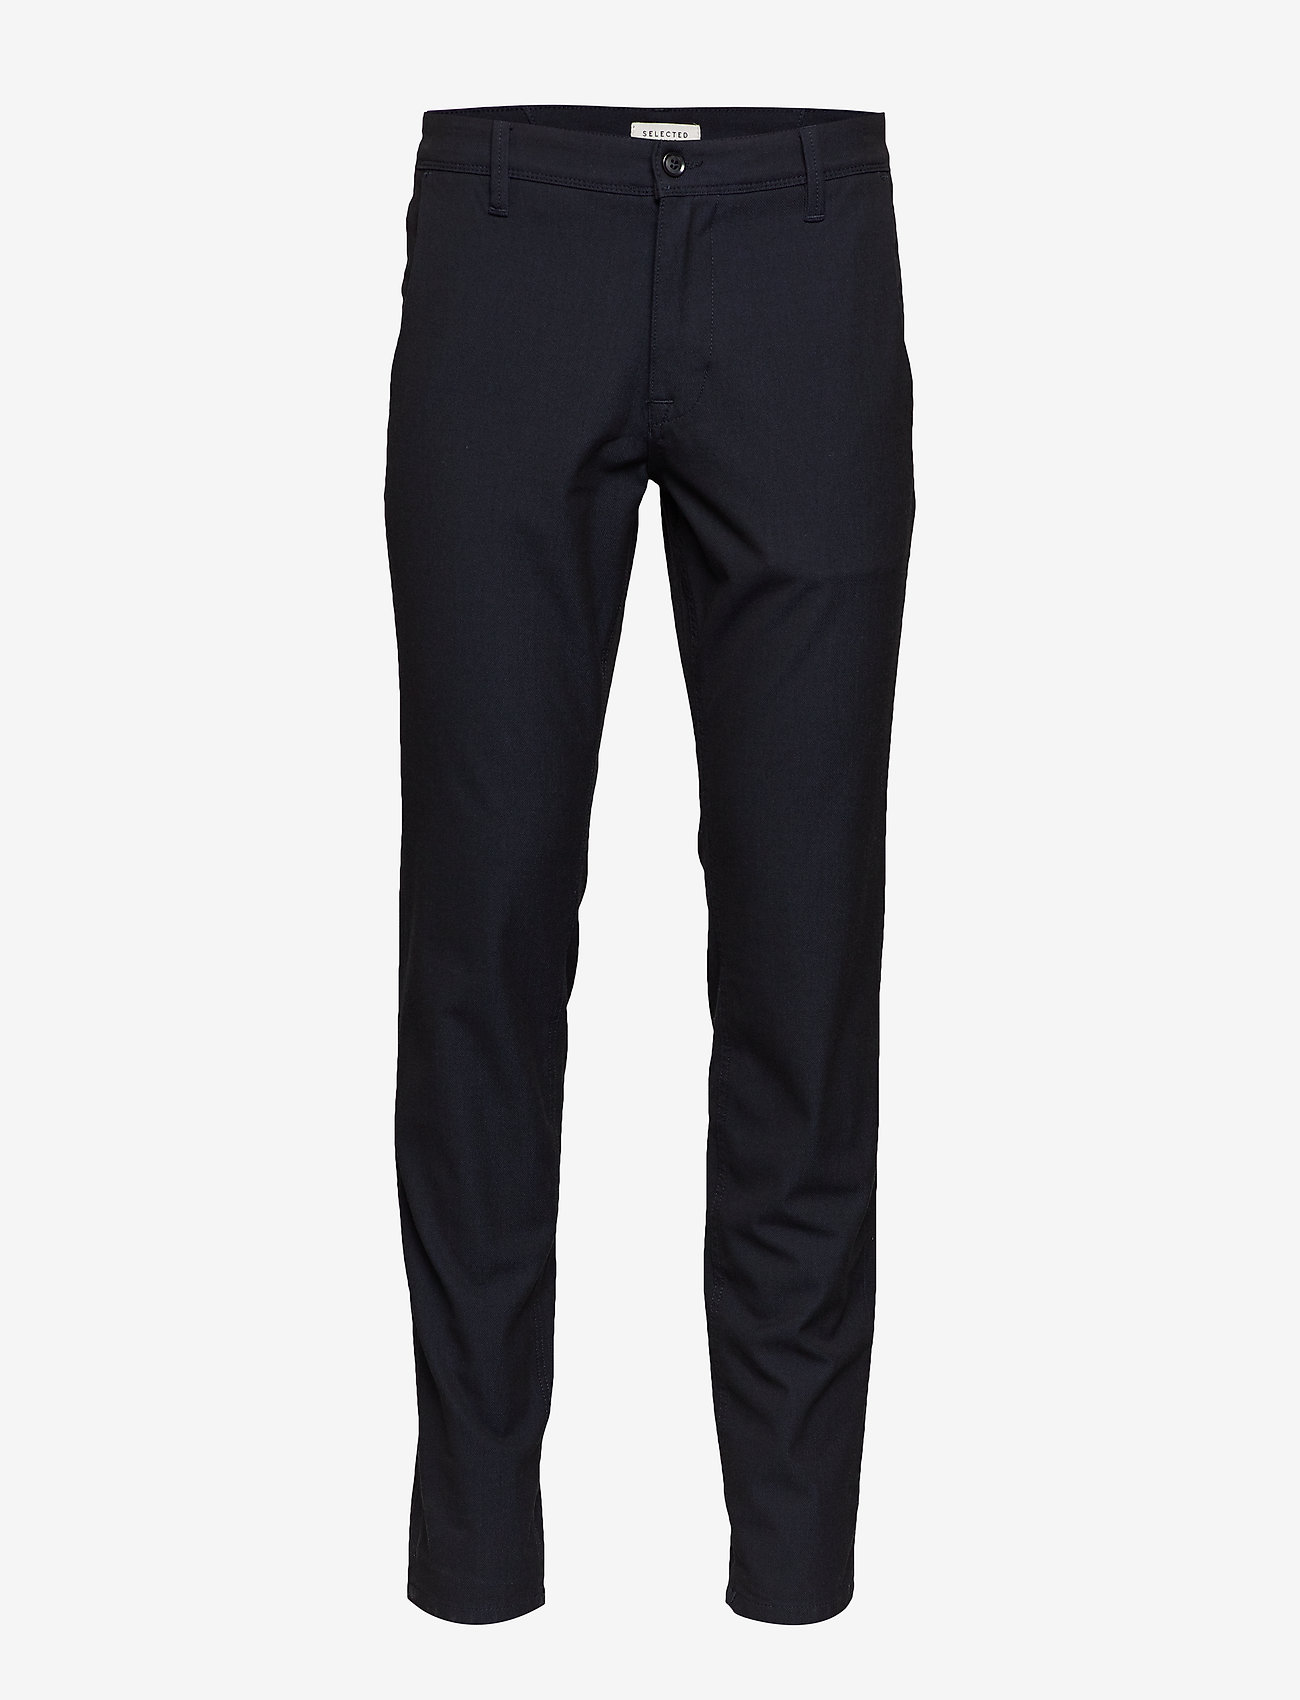 Selected Homme - SLHSLIM-STORM FLEX SMART PANTS W NOOS - suitbukser - dark sapphire - 0